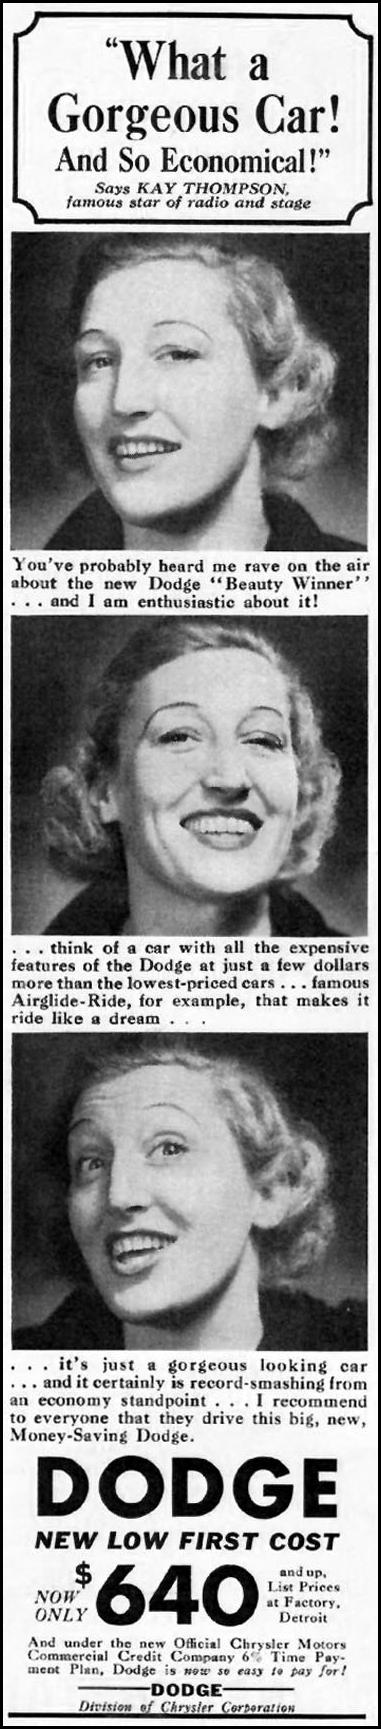 DODGE AUTOMOBILES BETTER HOMES AND GARDENS 05/01/1936 p. 90